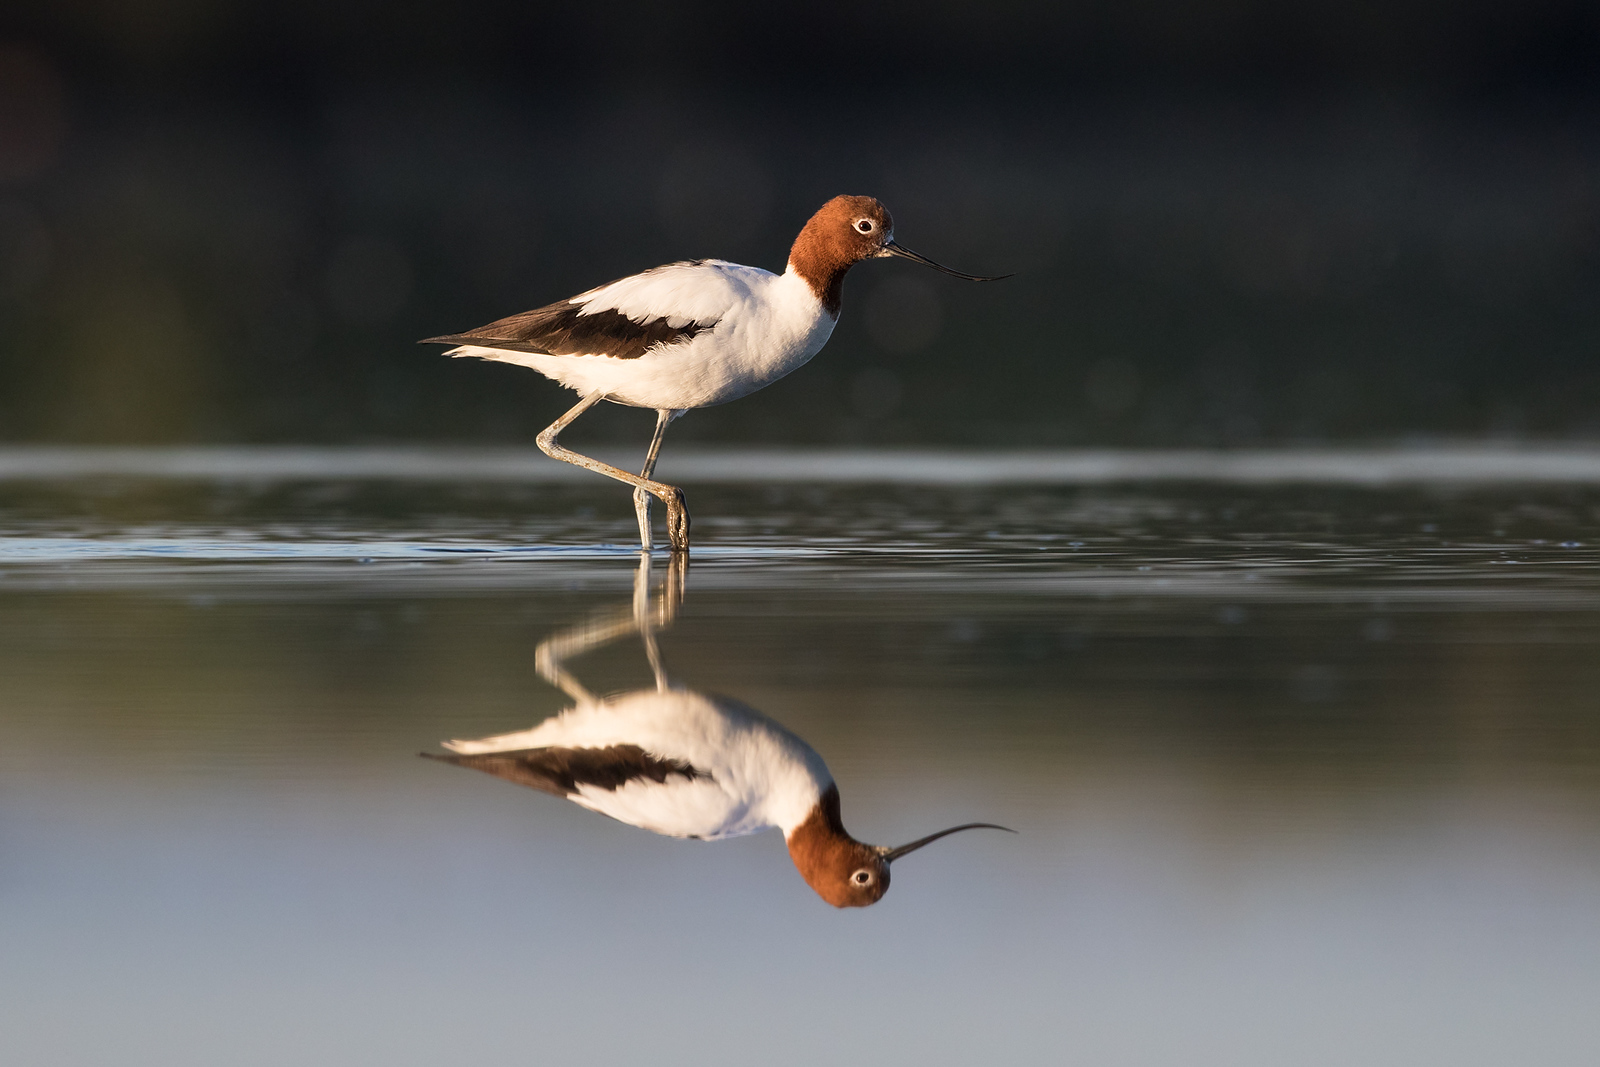 Red-necked Avocet wading through water